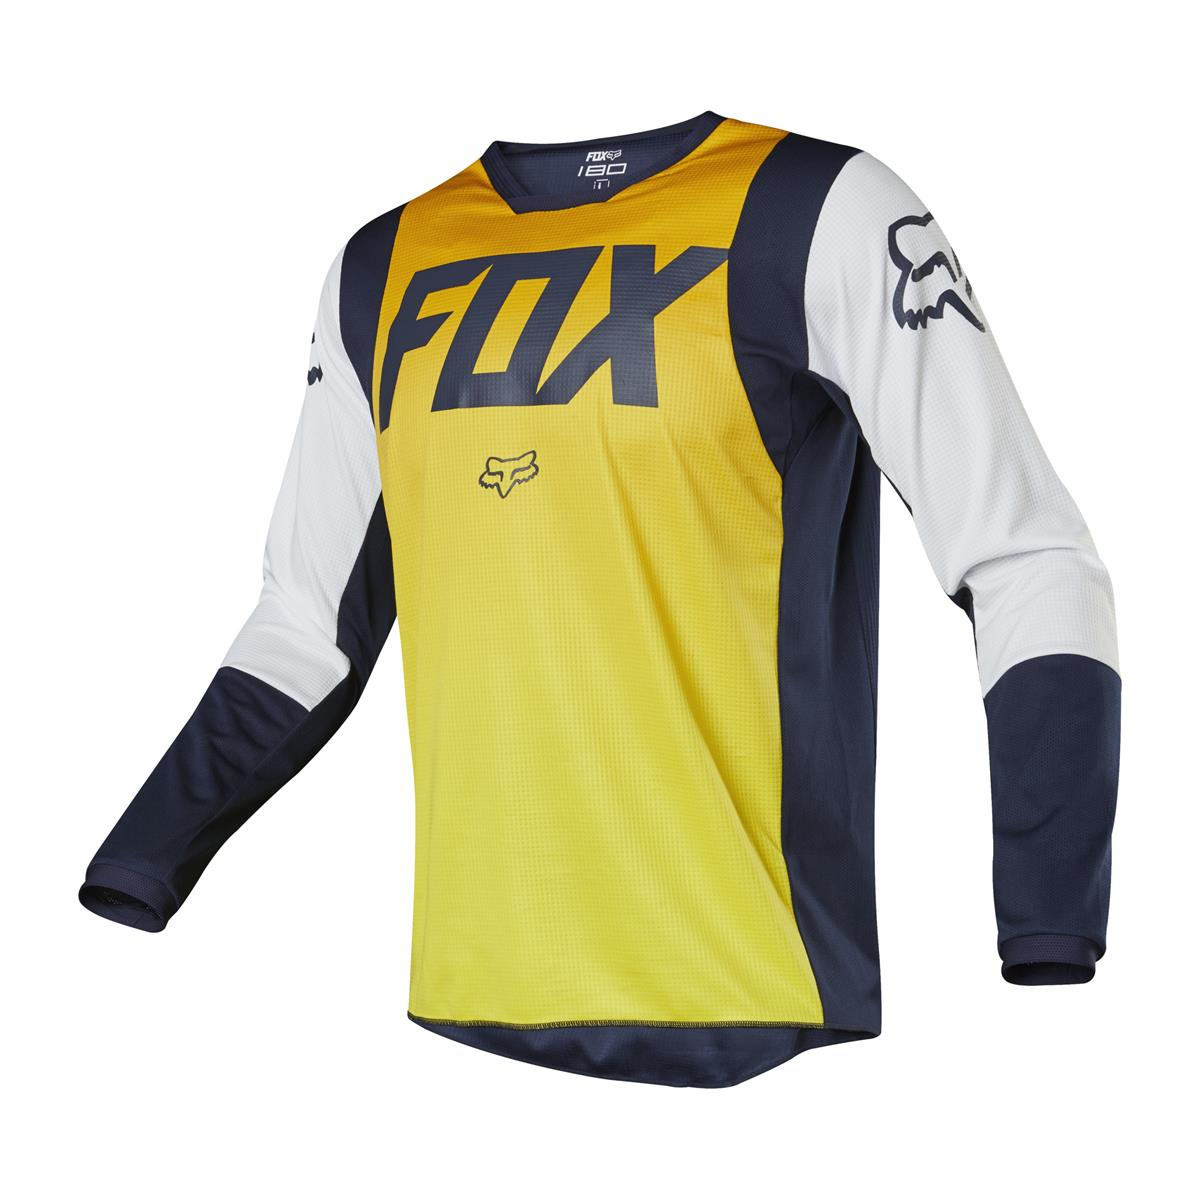 Fox Jersey 180 Idol Limited Edition A1 - Multi